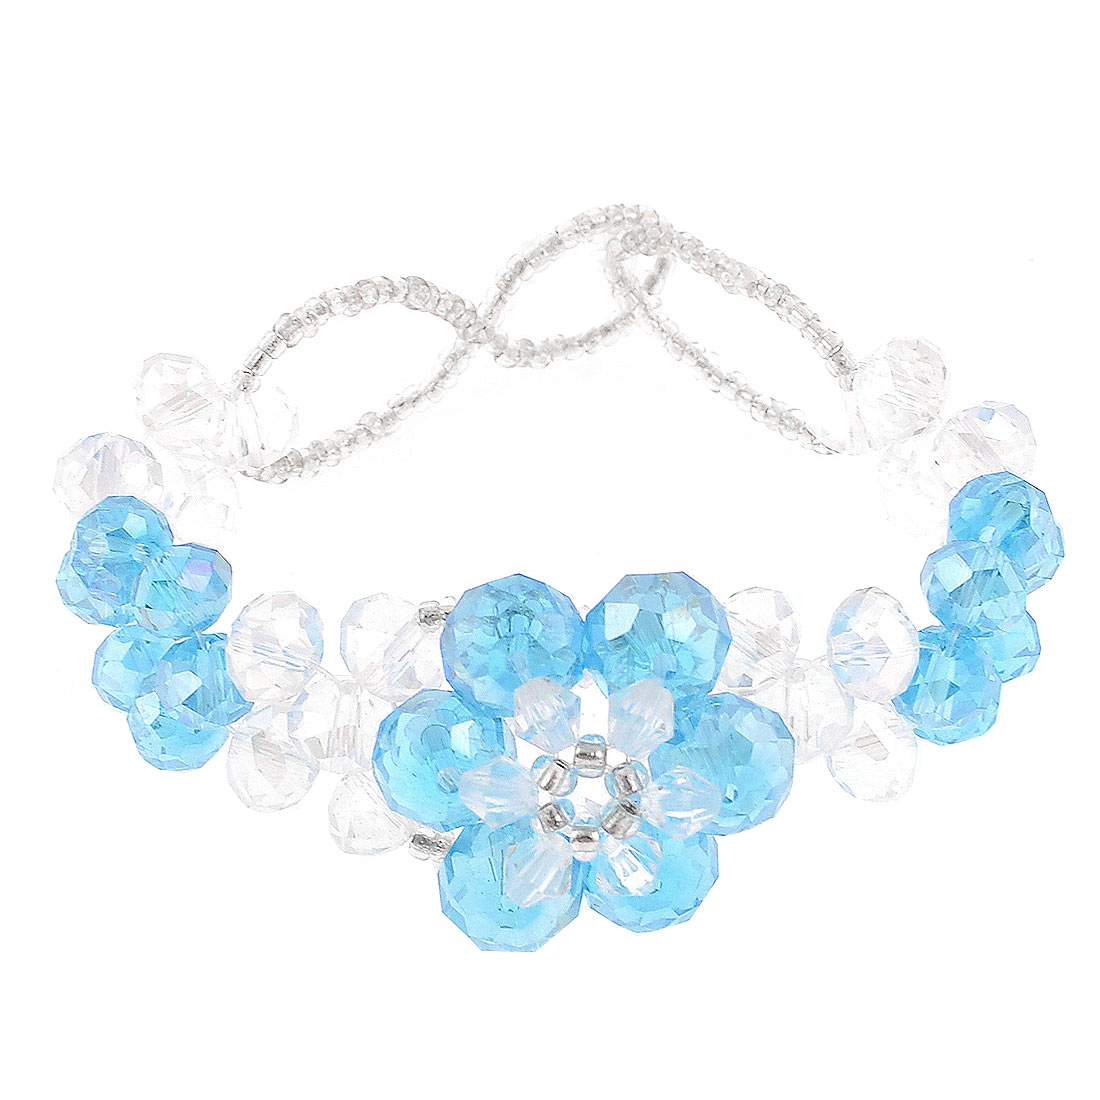 Lady Faceted Plastic Shiny Beaded Crystal Bracelet Ornament Clear Sky Blue